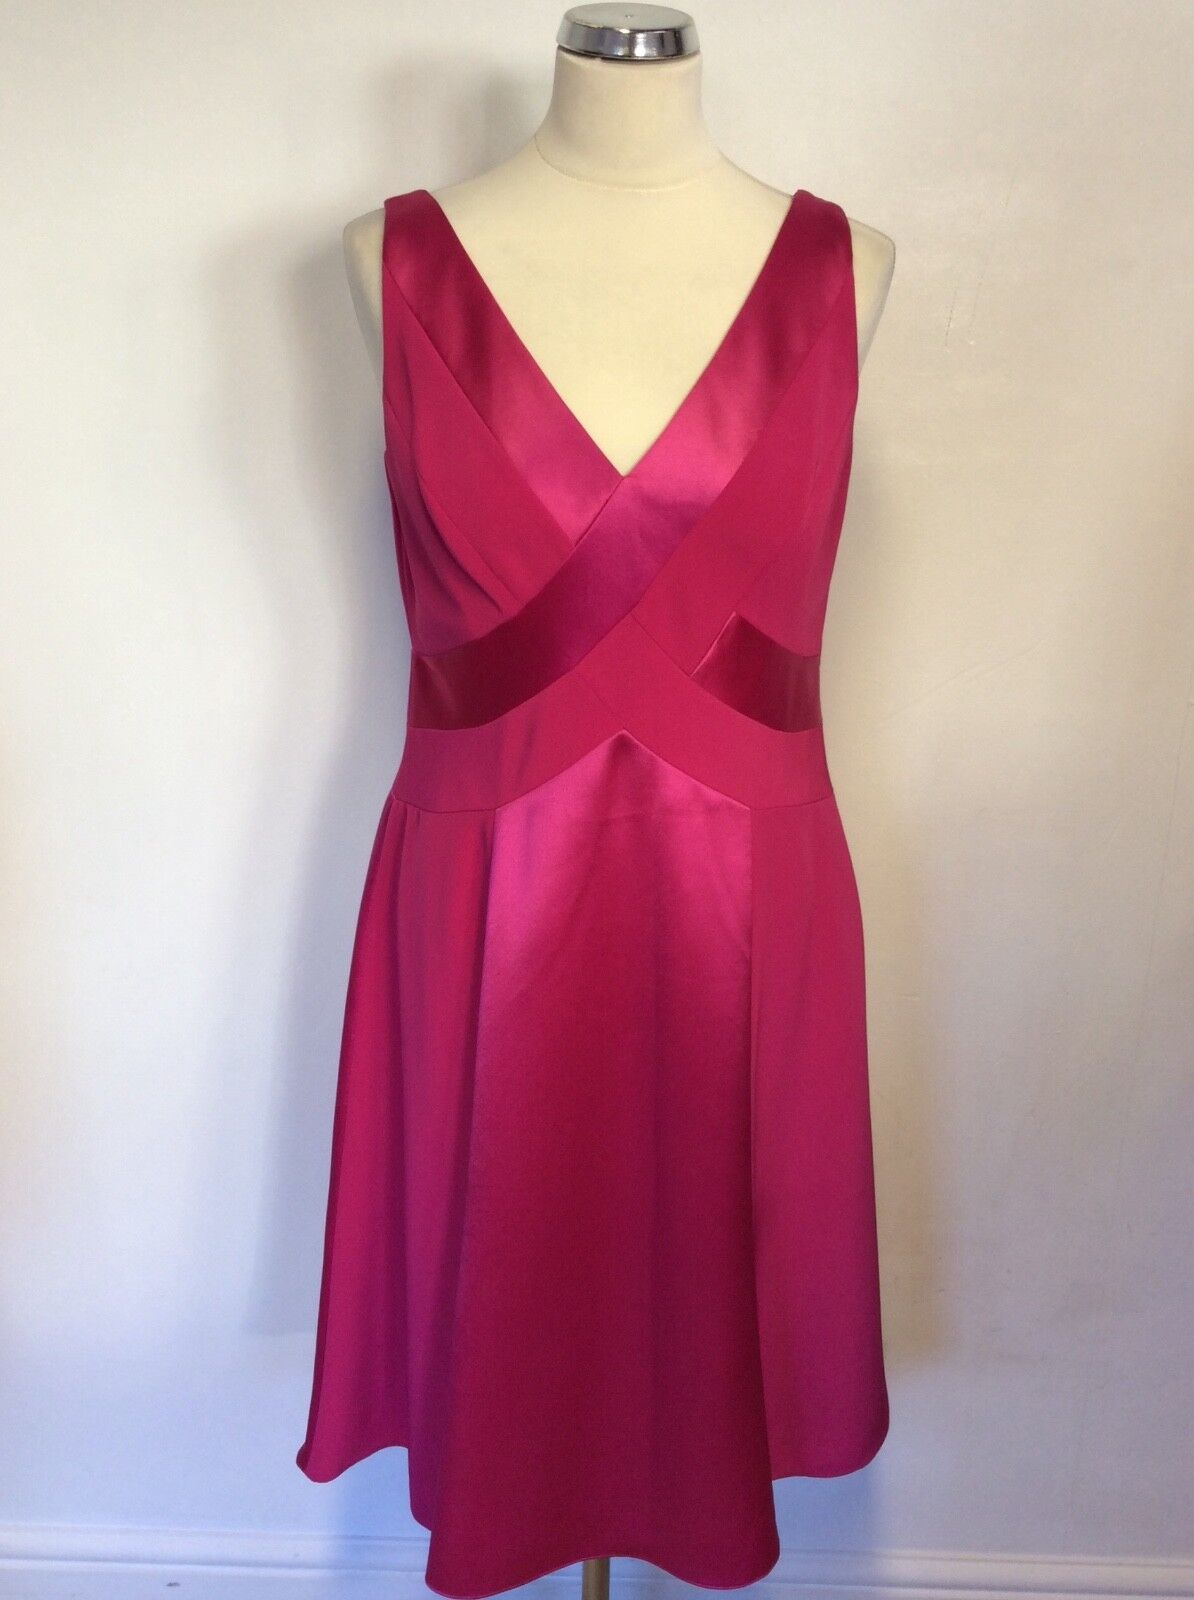 BNWT MARKS & SPENCER AUTOGRAPH PINK FIZZ SPECIAL OCCASION DRESS SIZE 12 COST